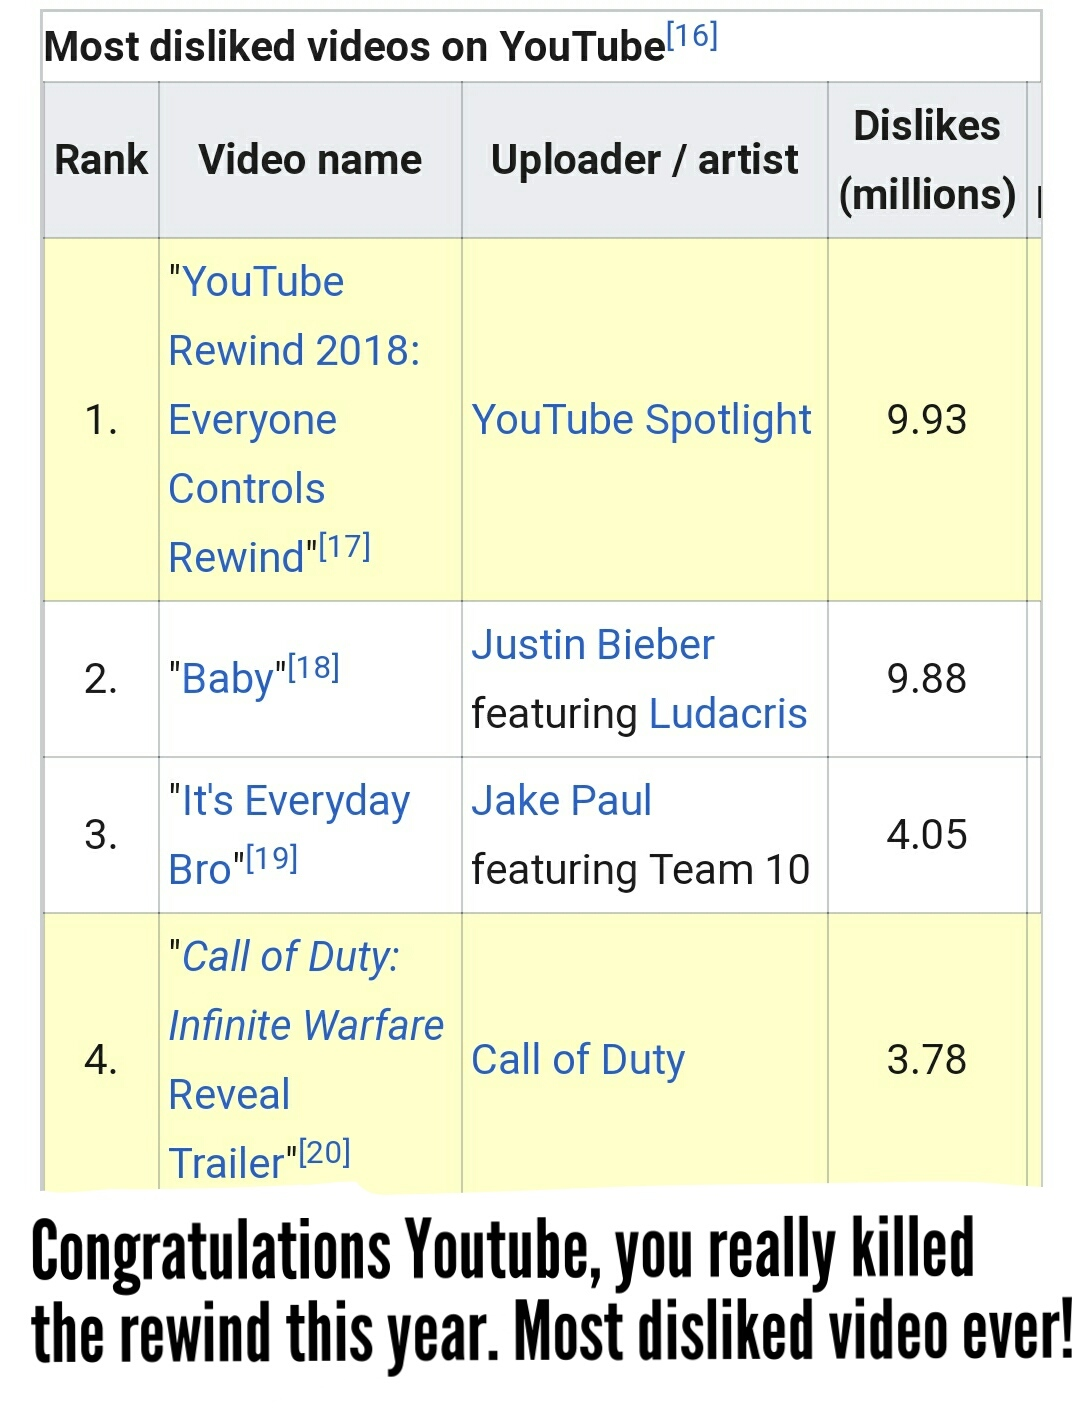 Holy shit, it took just a week to get 10mil dislikes while it took Bieber 8 years - meme